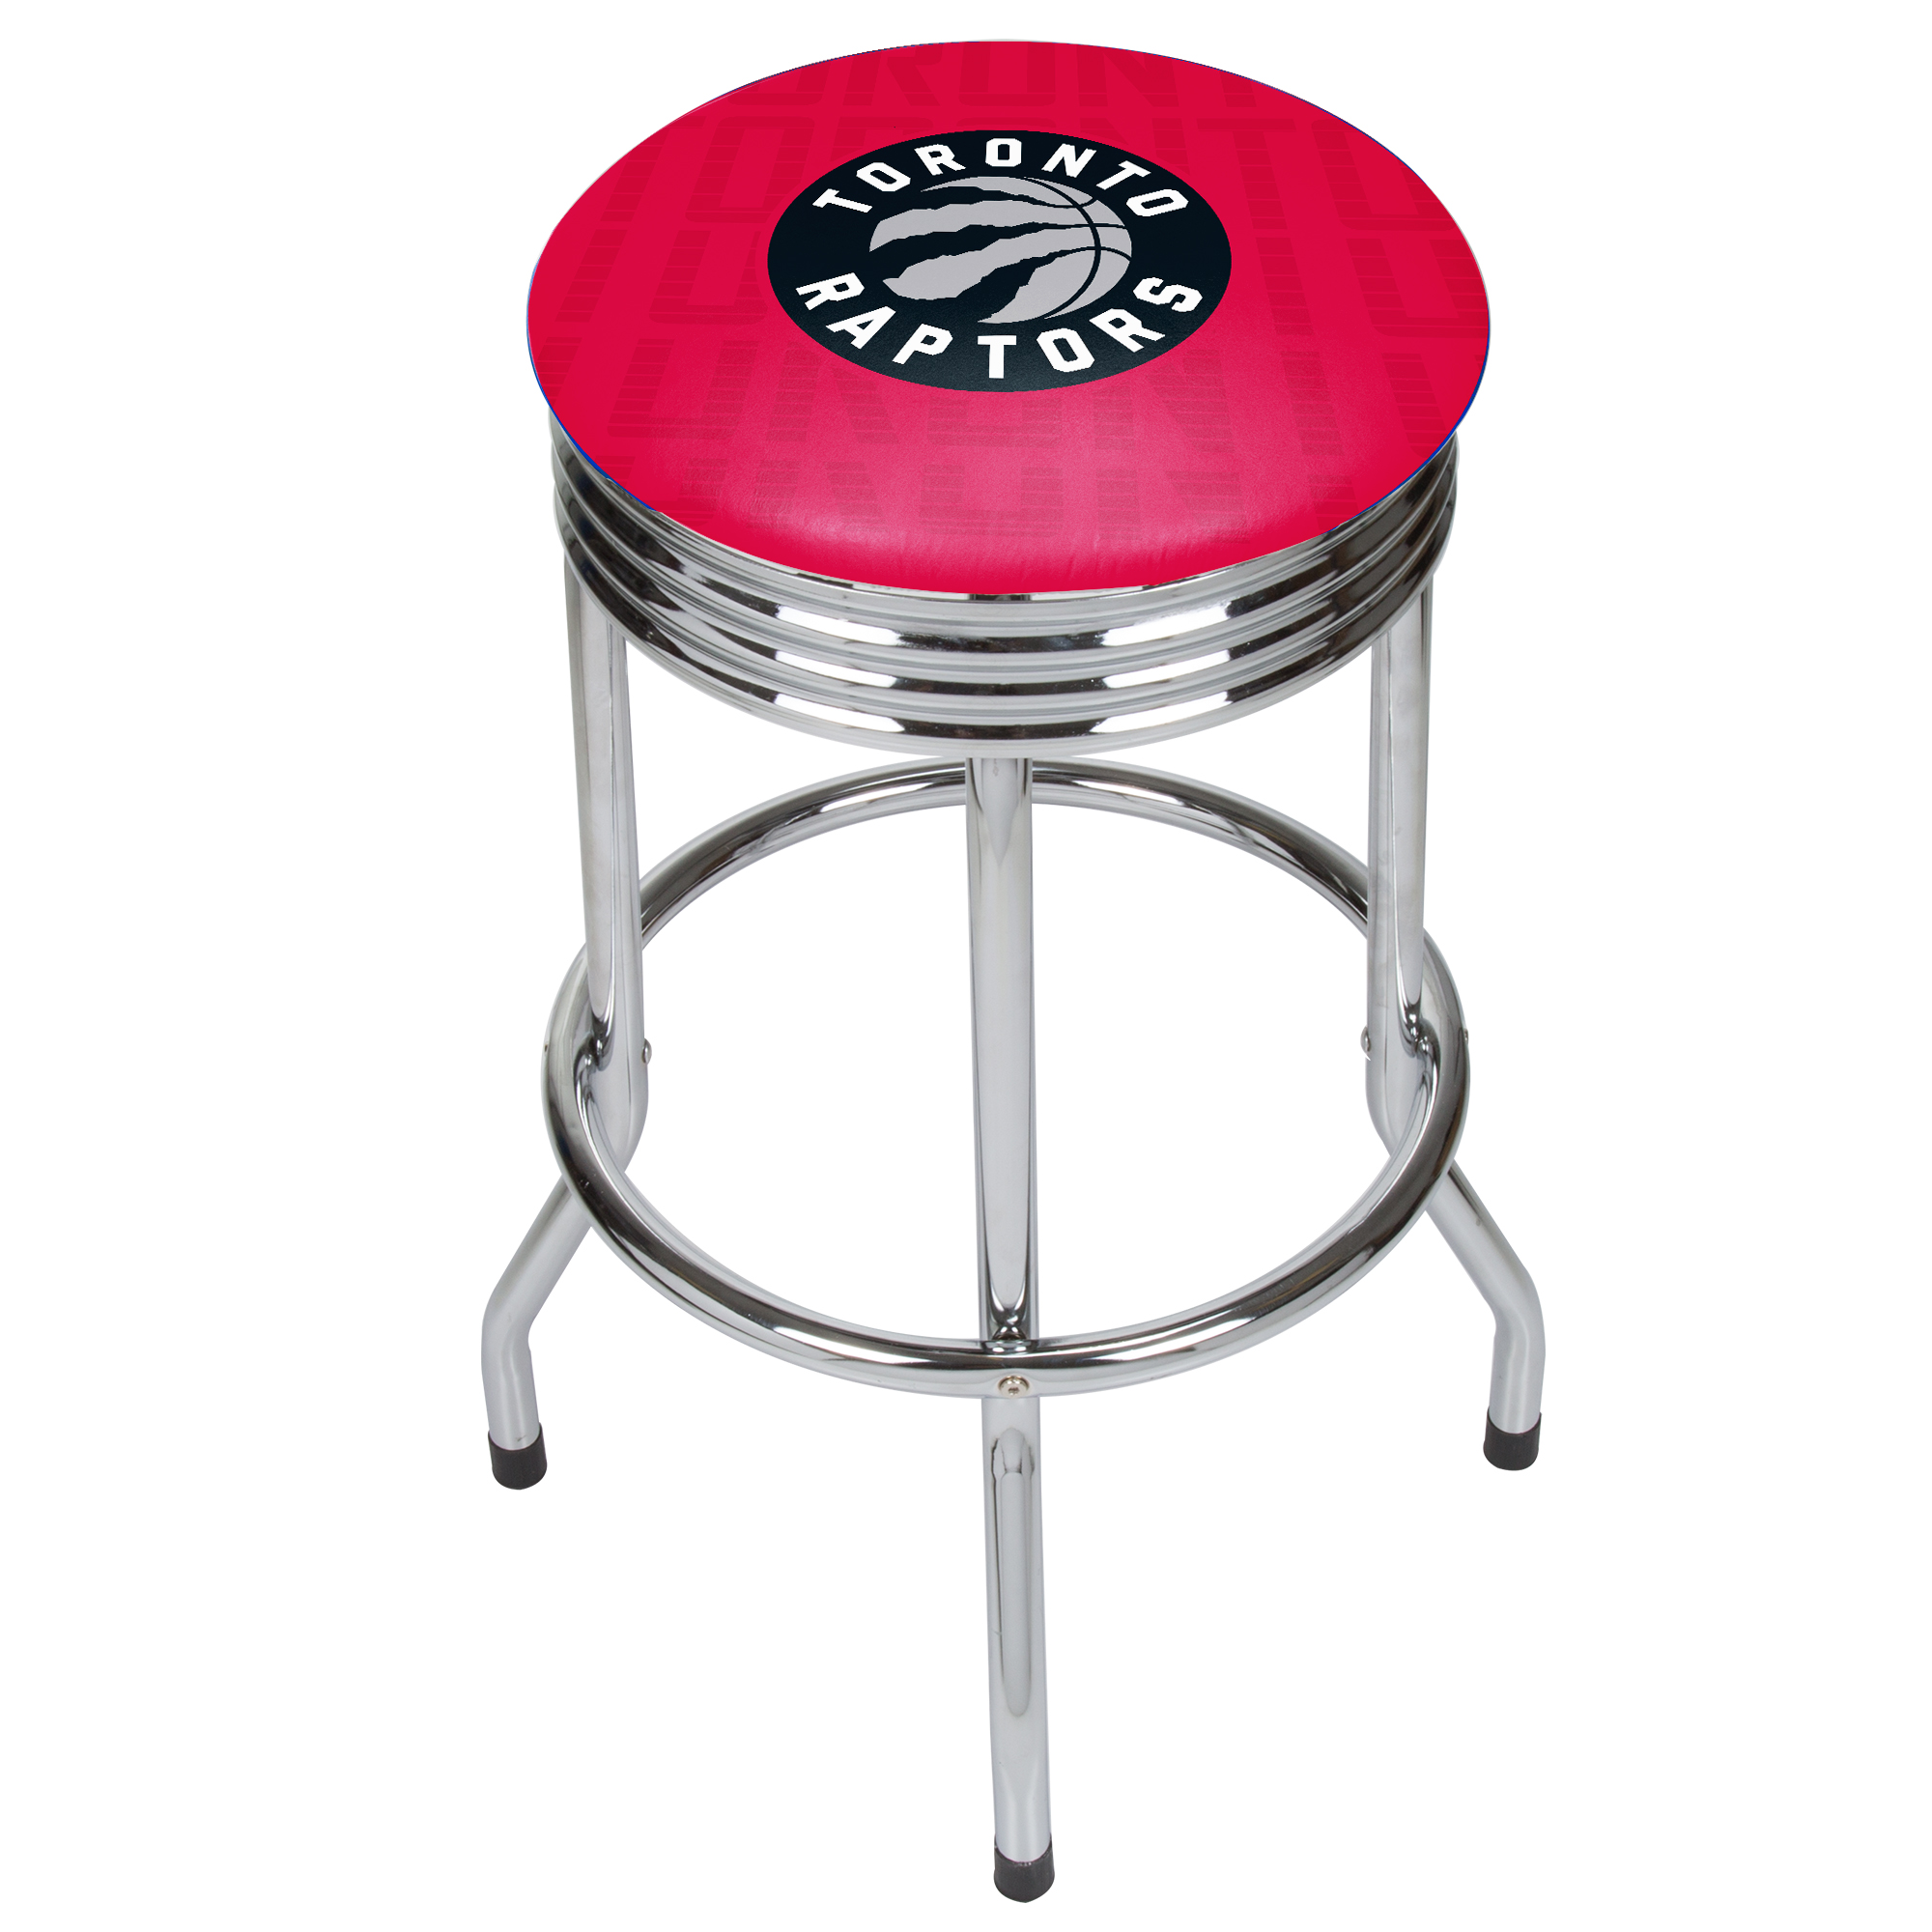 NBA Chrome Ribbed Bar Stool - City - Toronto Raptors